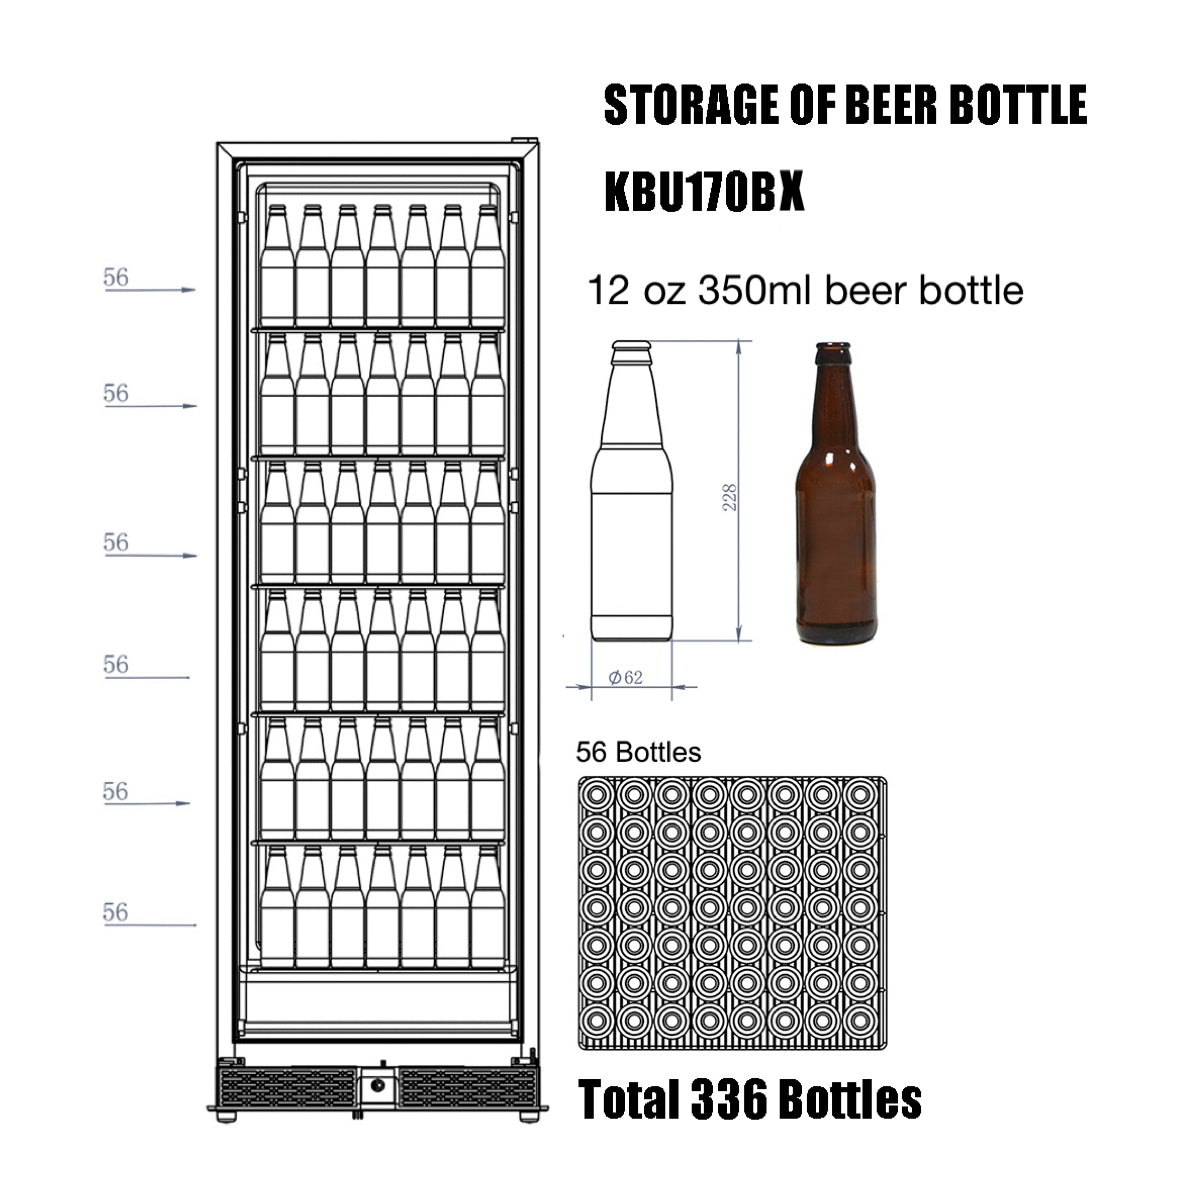 KBU170b Storage of Beer Bottle